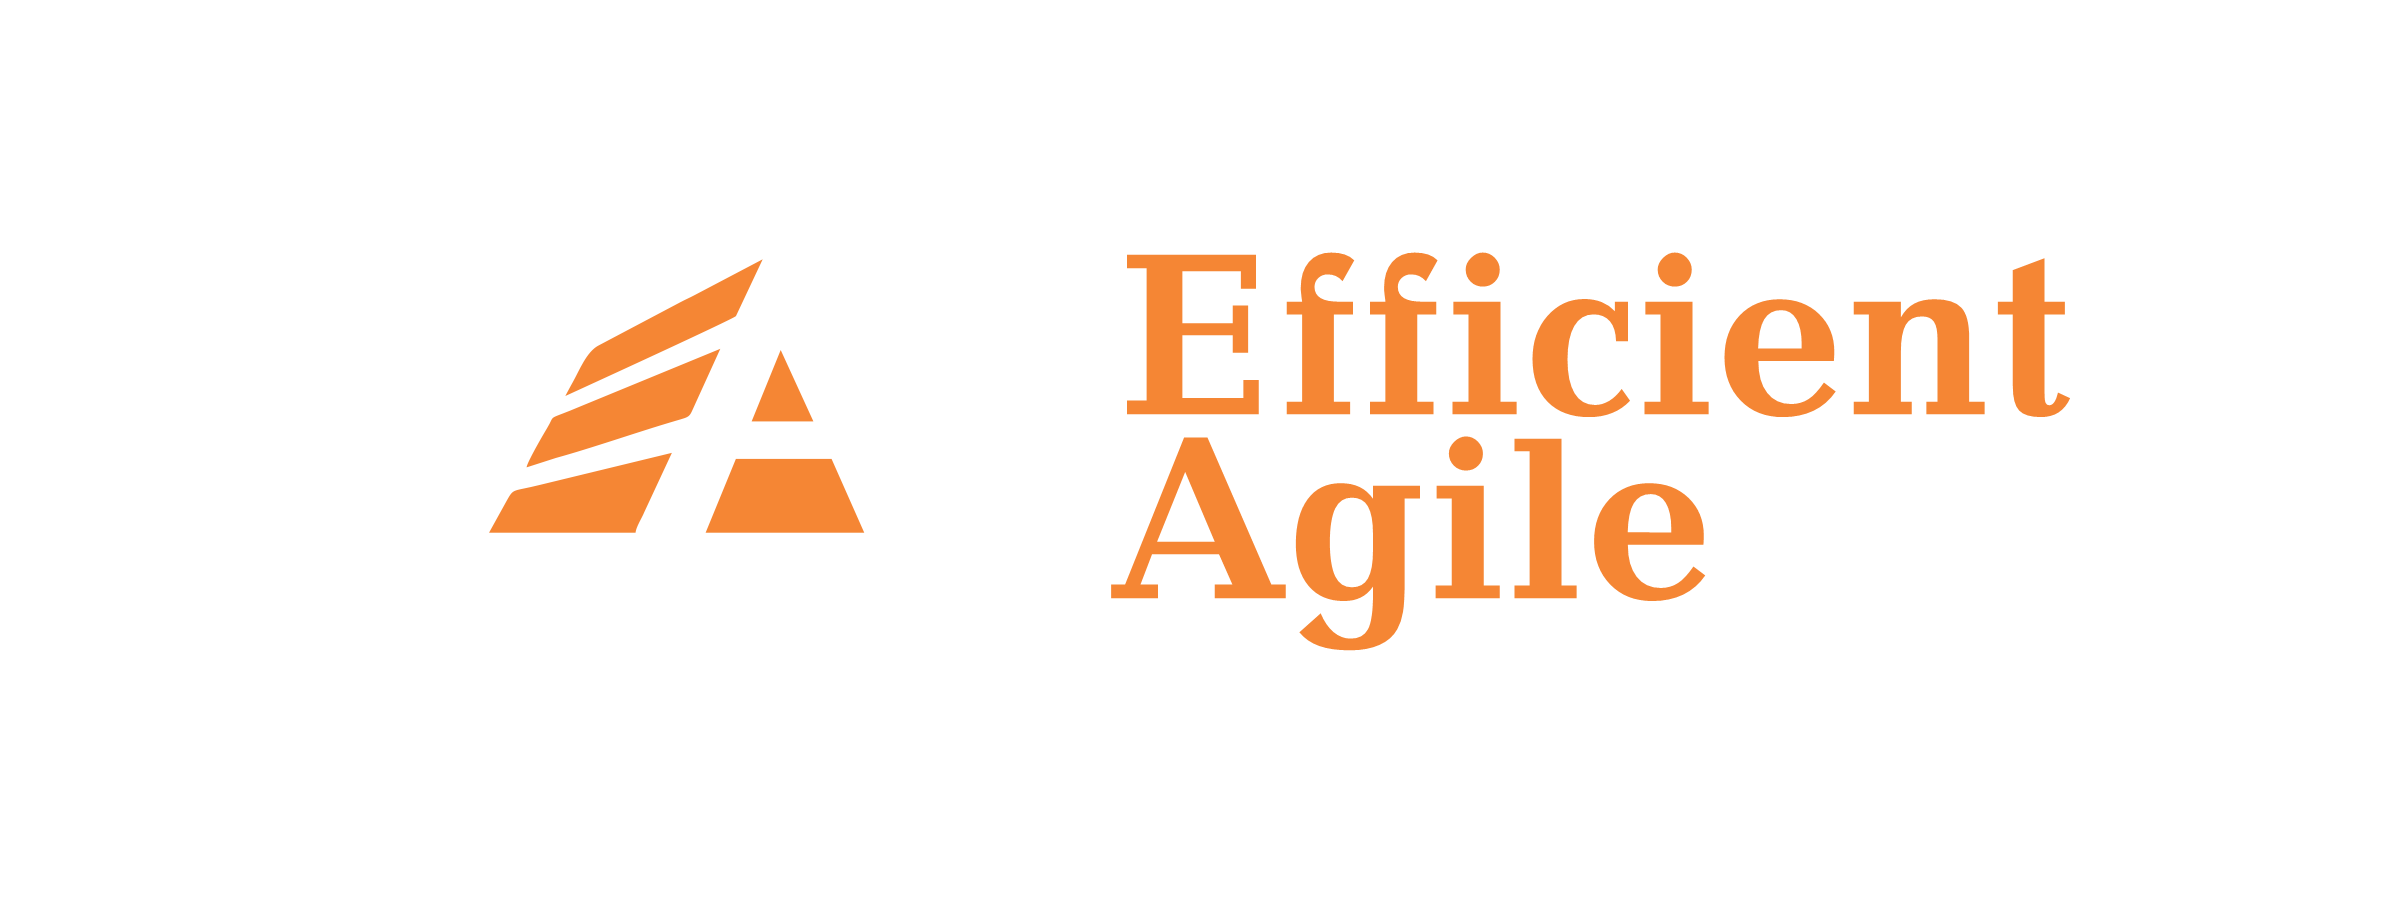 Efficient Agile